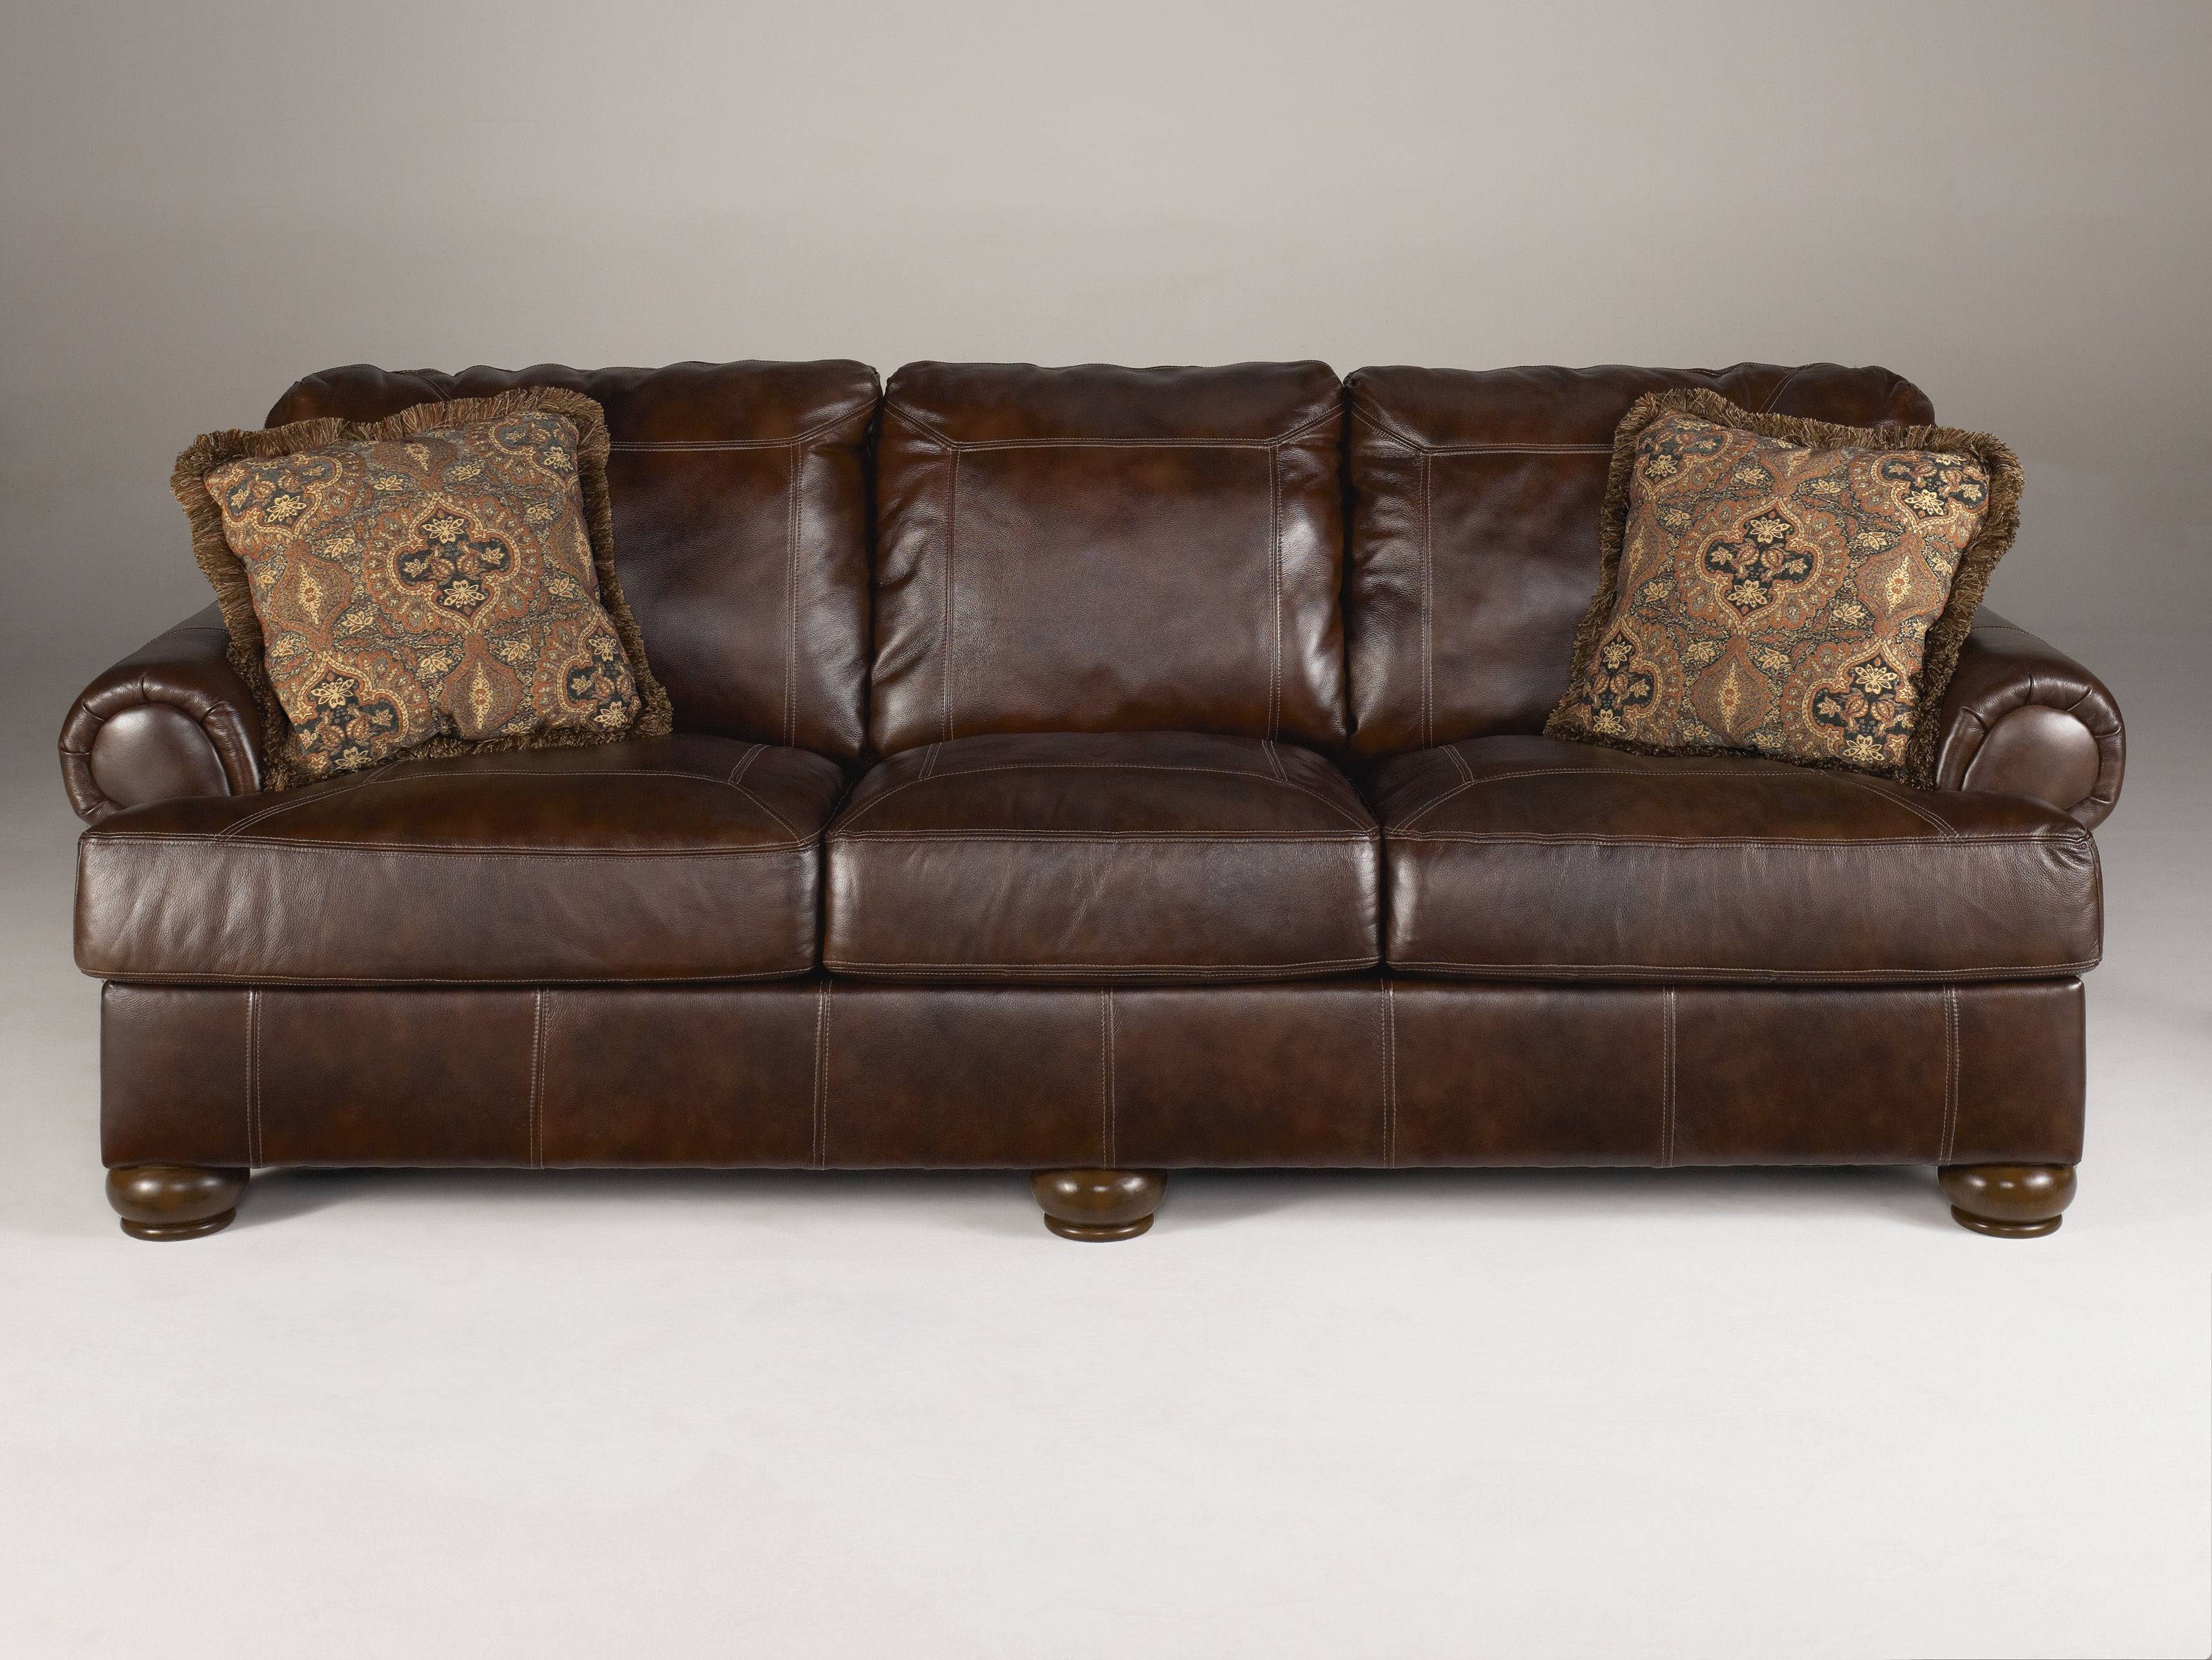 Axiom Traditional Walnut Leather Wood Sofa | Living Rooms | The within Traditional Leather Couch (Image 1 of 30)